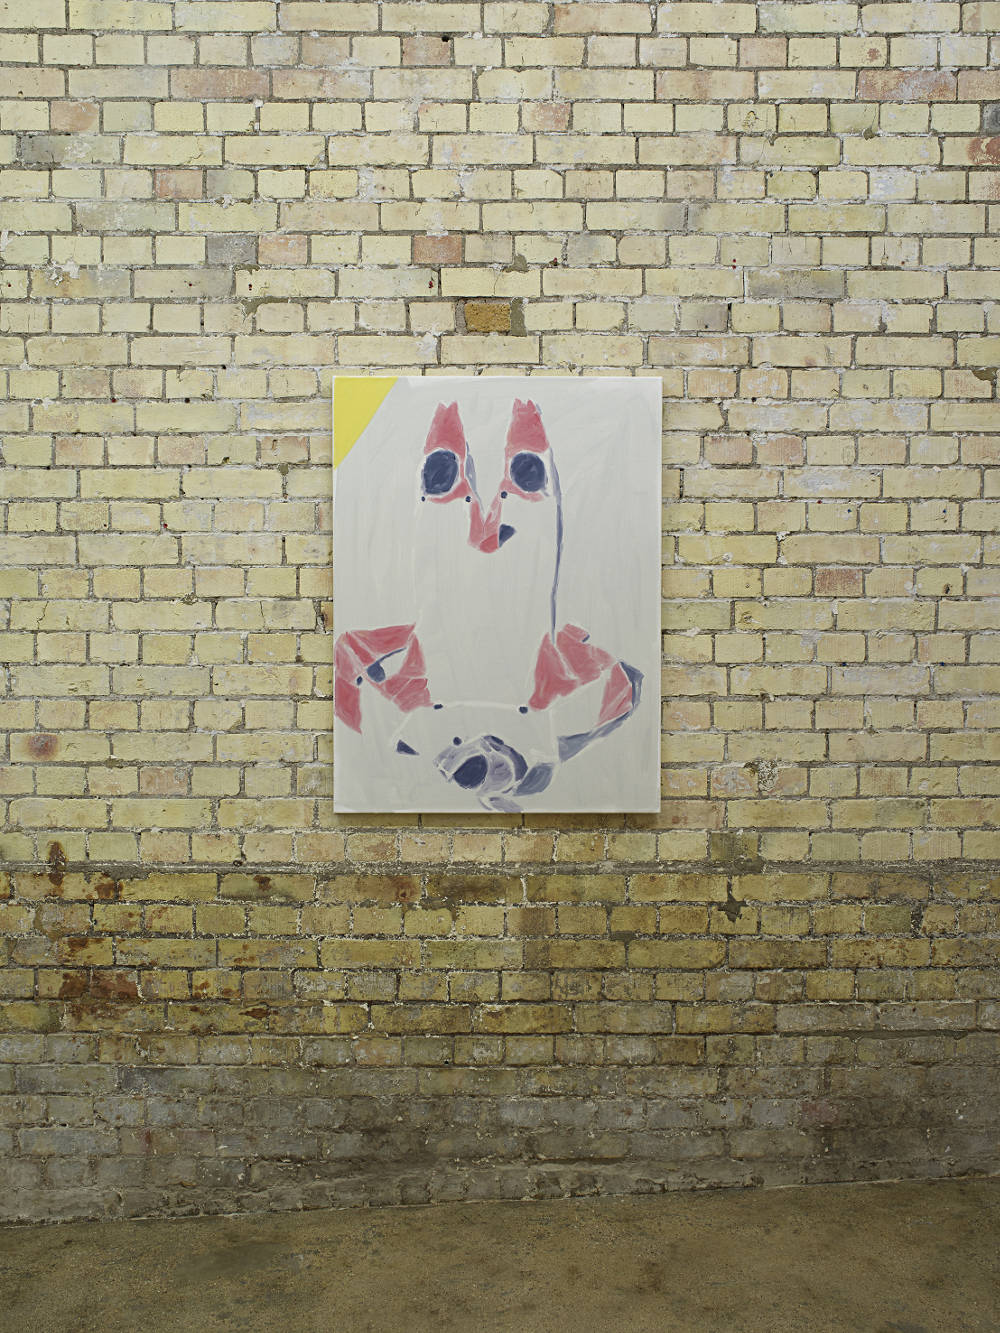 Bruno Pacheco, Cameo, 2017. Oil on canvas, photo: Andy Keate, courtesy the artist and Hollybush Gardens